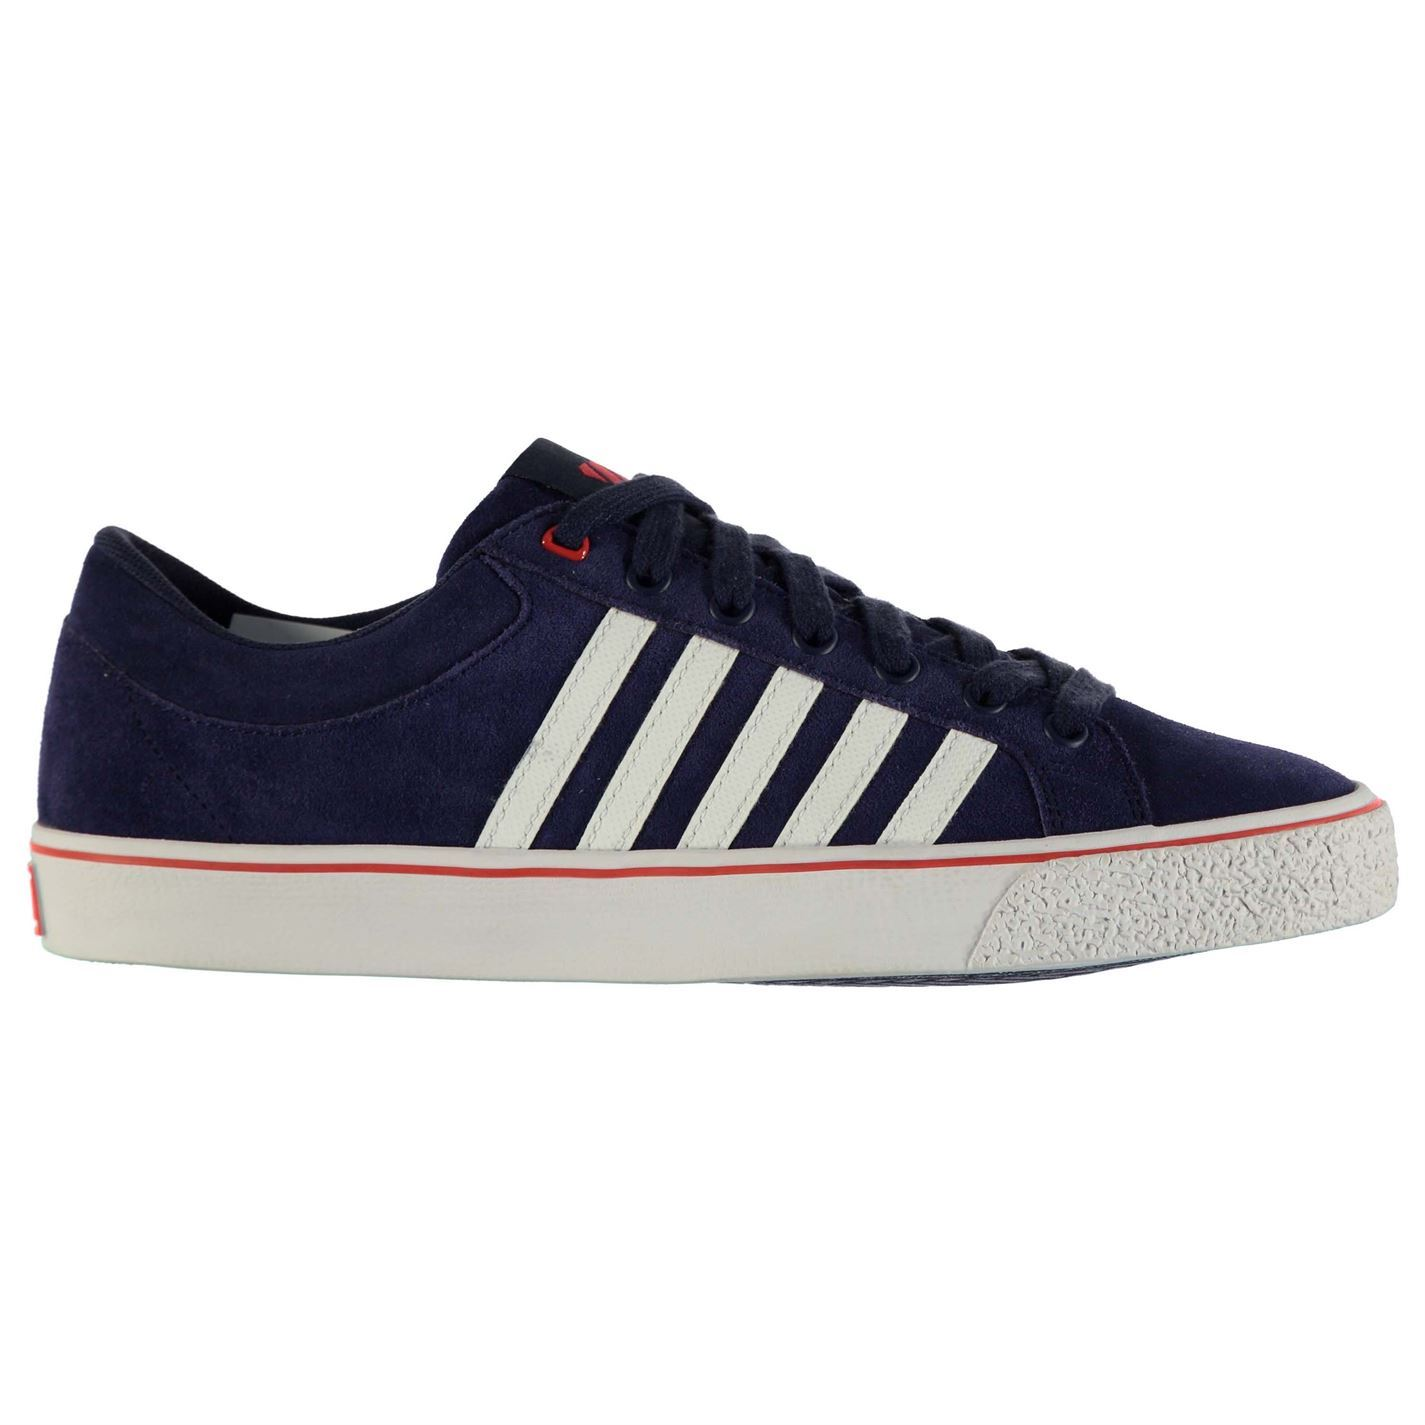 K Swiss Adcourt LA Casual Trainers Mens Nvy Wht Red Fashion Trainers Sneakers